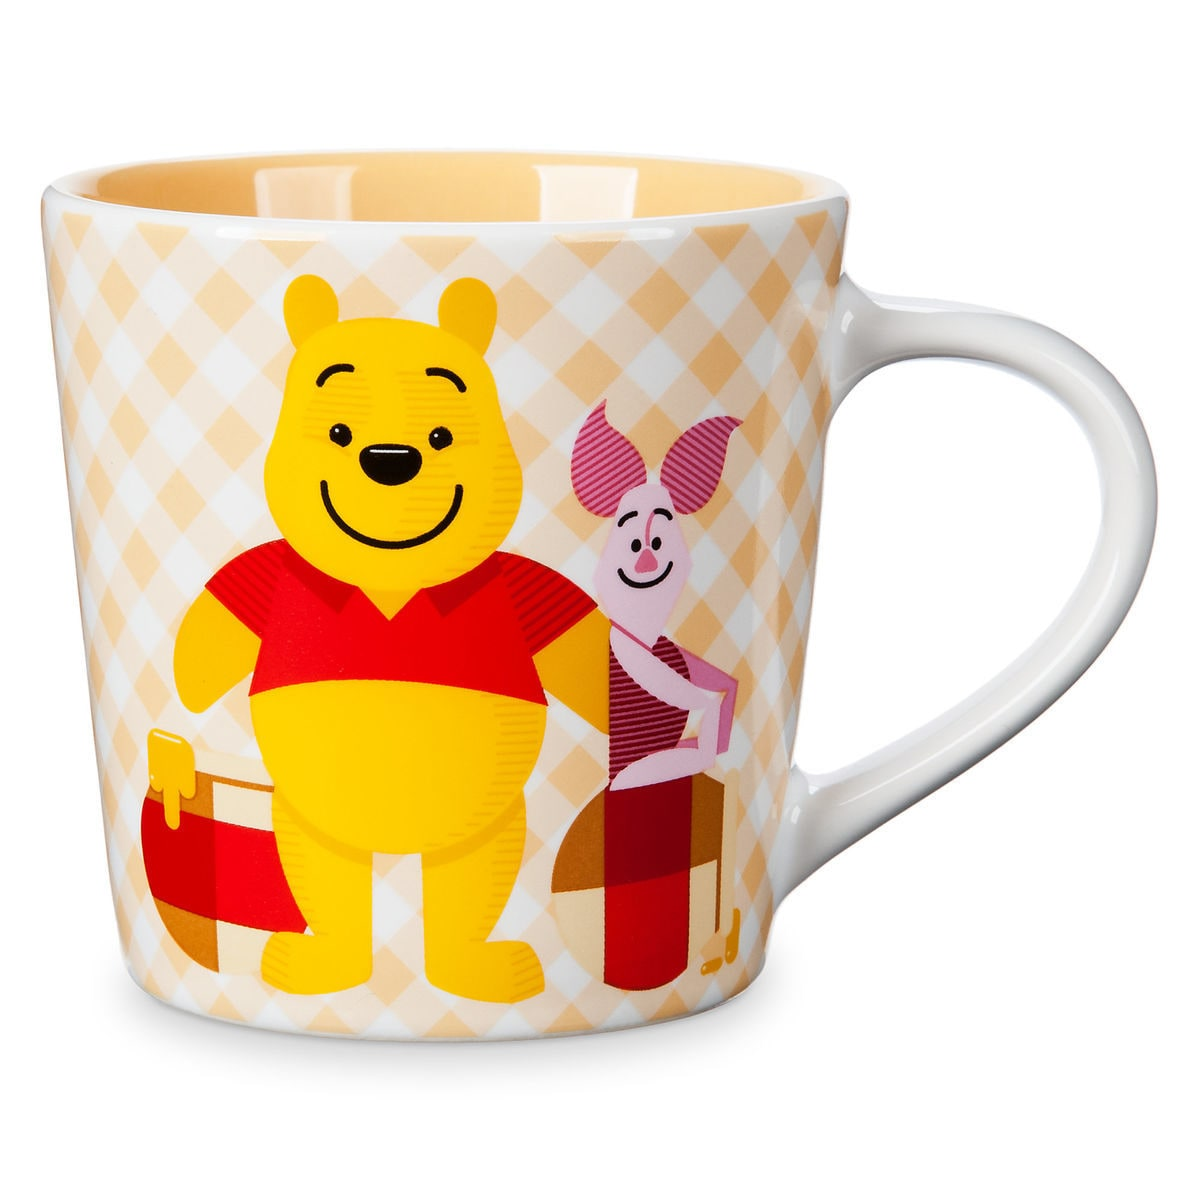 Product Image of Winnie the Pooh and Piglet Checkered Mug   1 8ed4a869d